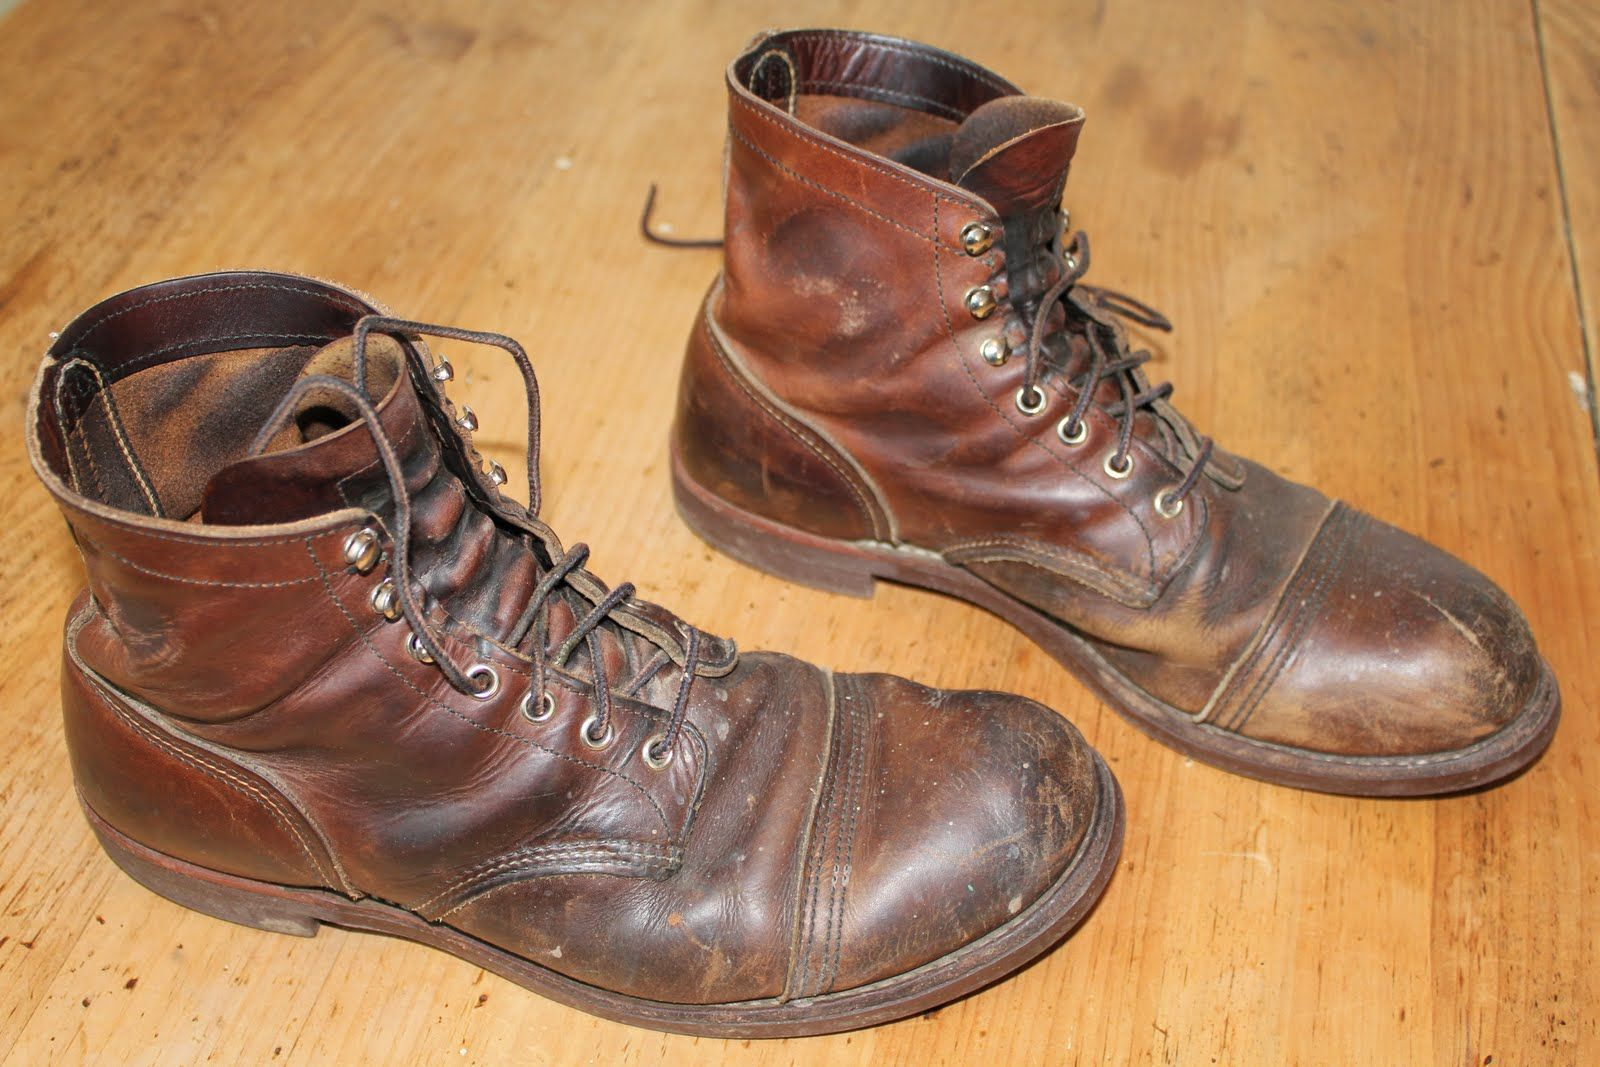 17 Best images about Redwing boots on Pinterest | Copper, Red wing ...